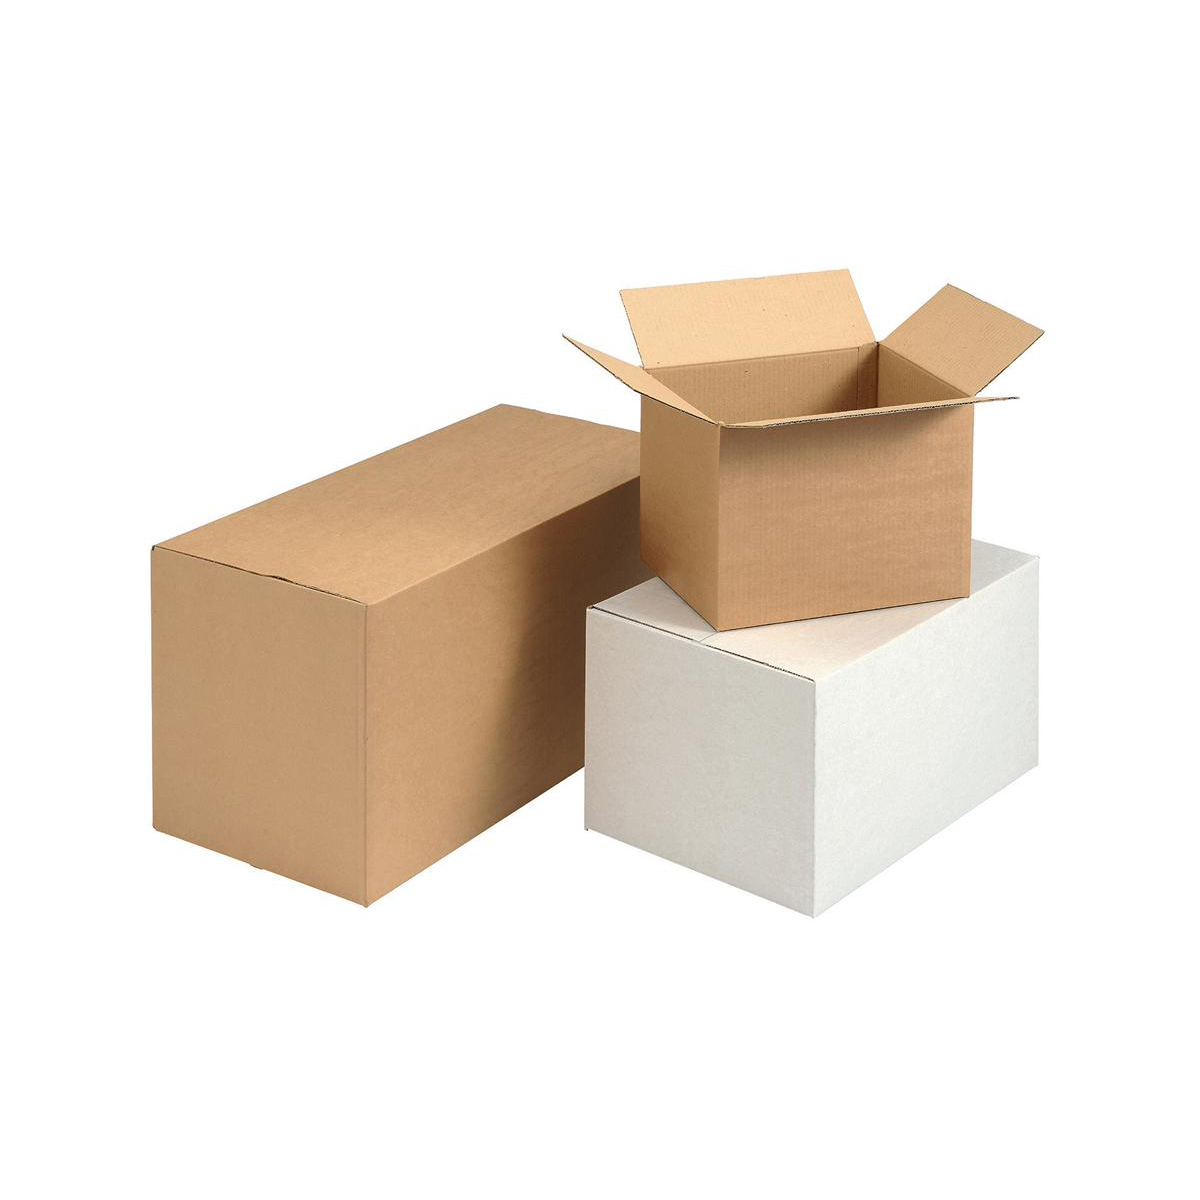 Packaging boxes Packing Carton Single Wall Strong Flat Packed W457xD305xH248mm Brown Pack 10